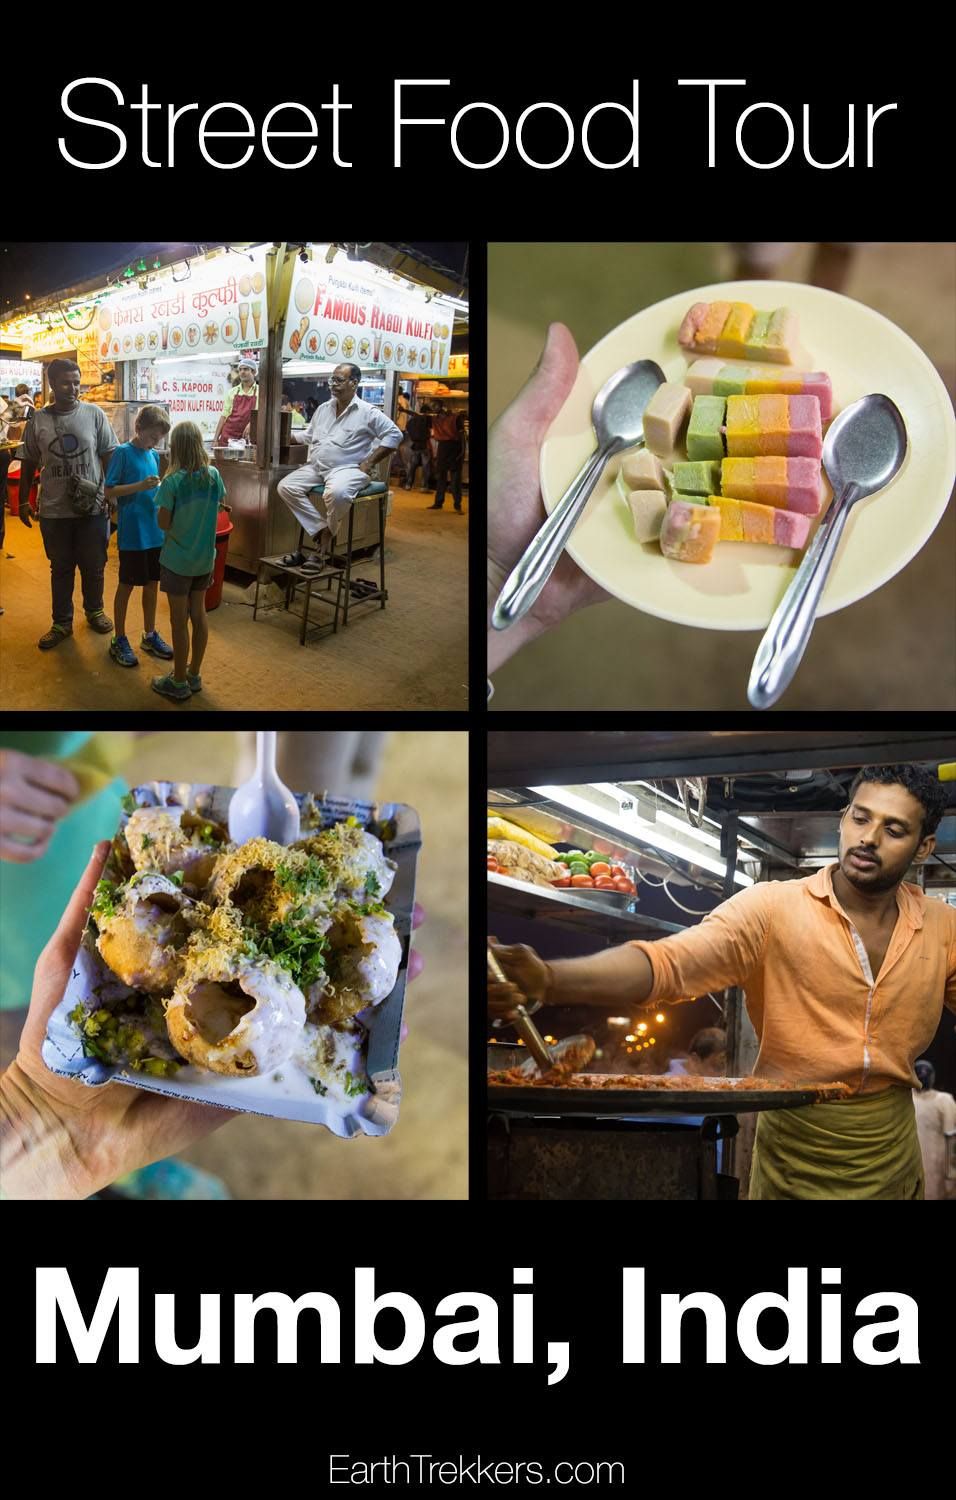 Street food tour in Mumbai India